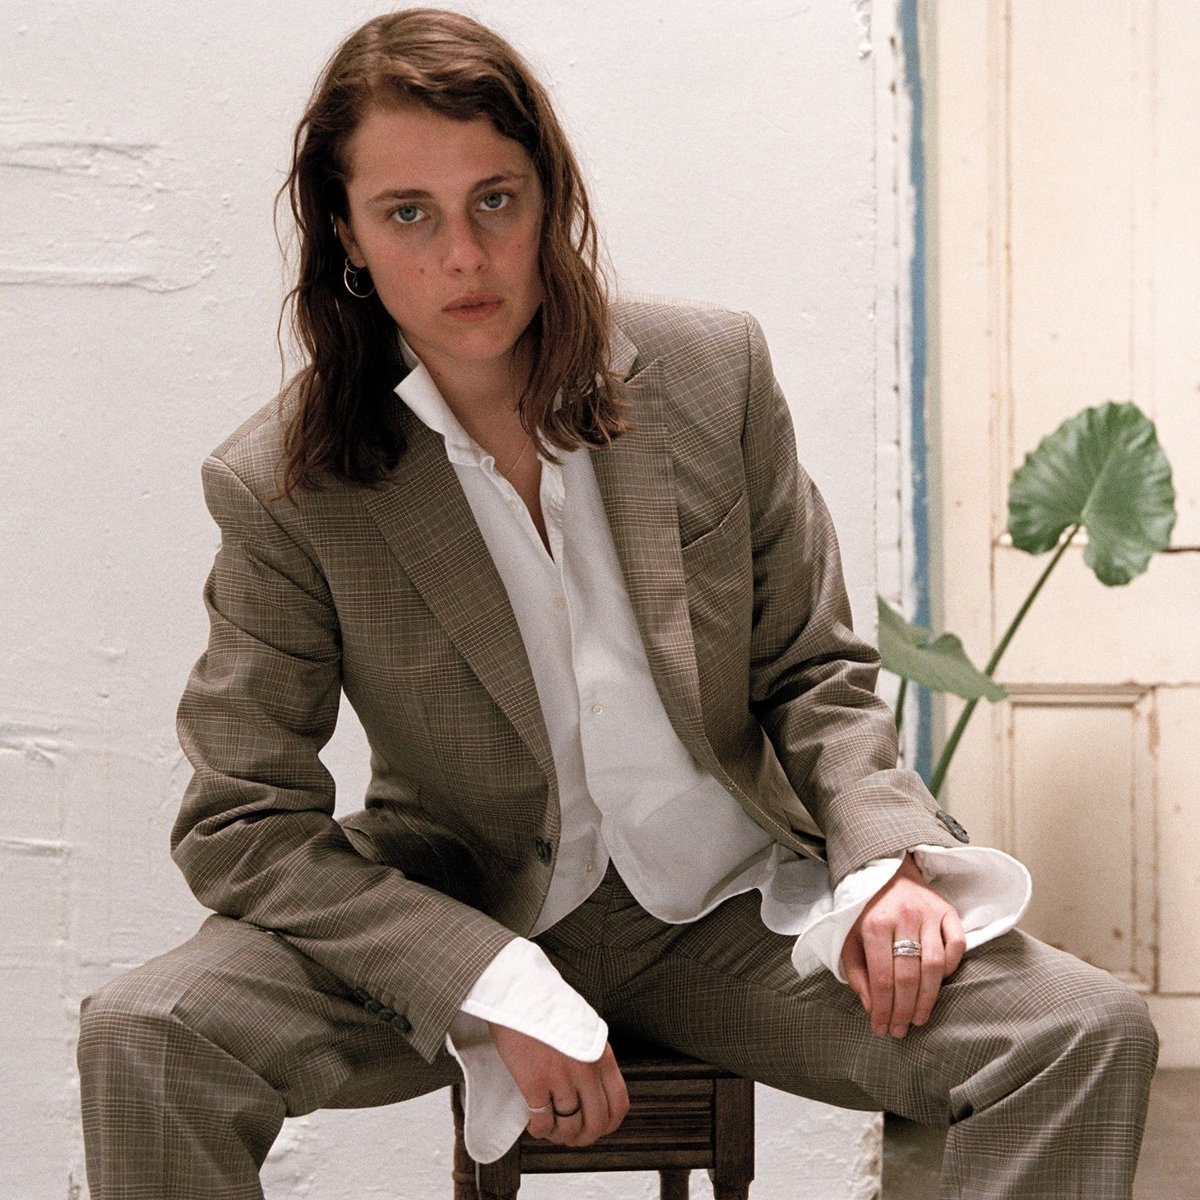 Todays Song of the Day (as chosen by @djcherylwaters) is conventional ride by London-based artist @MarikaHackman, out now via @subpop! Download FREE + subscribe to the Song of the Day podcast: ow.ly/ec5P50xliDE